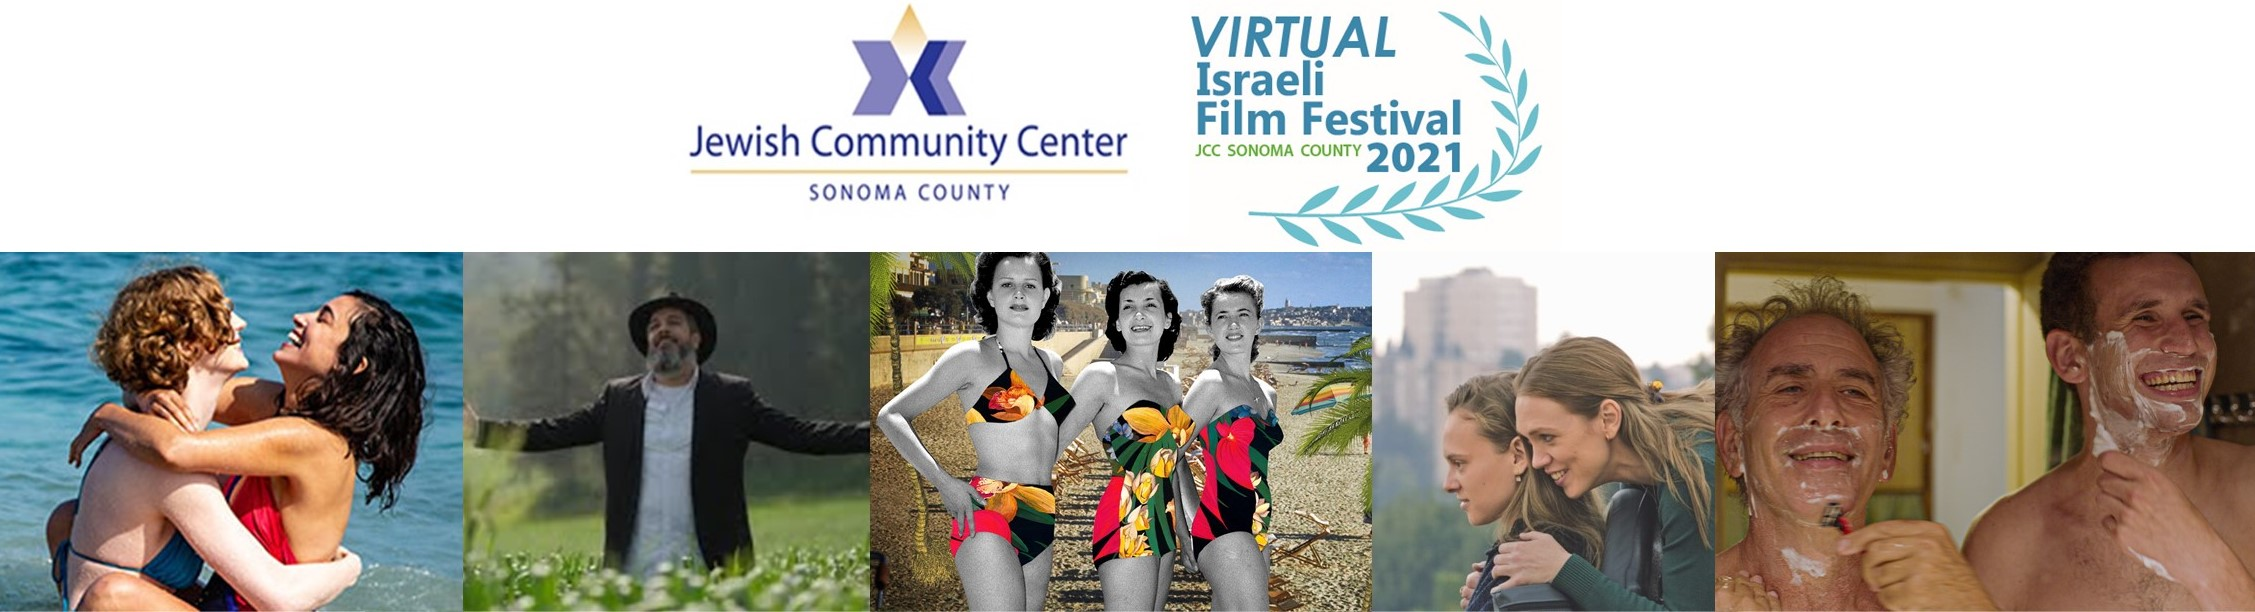 Sonoma County Virtual Jewish Film Festival 2020